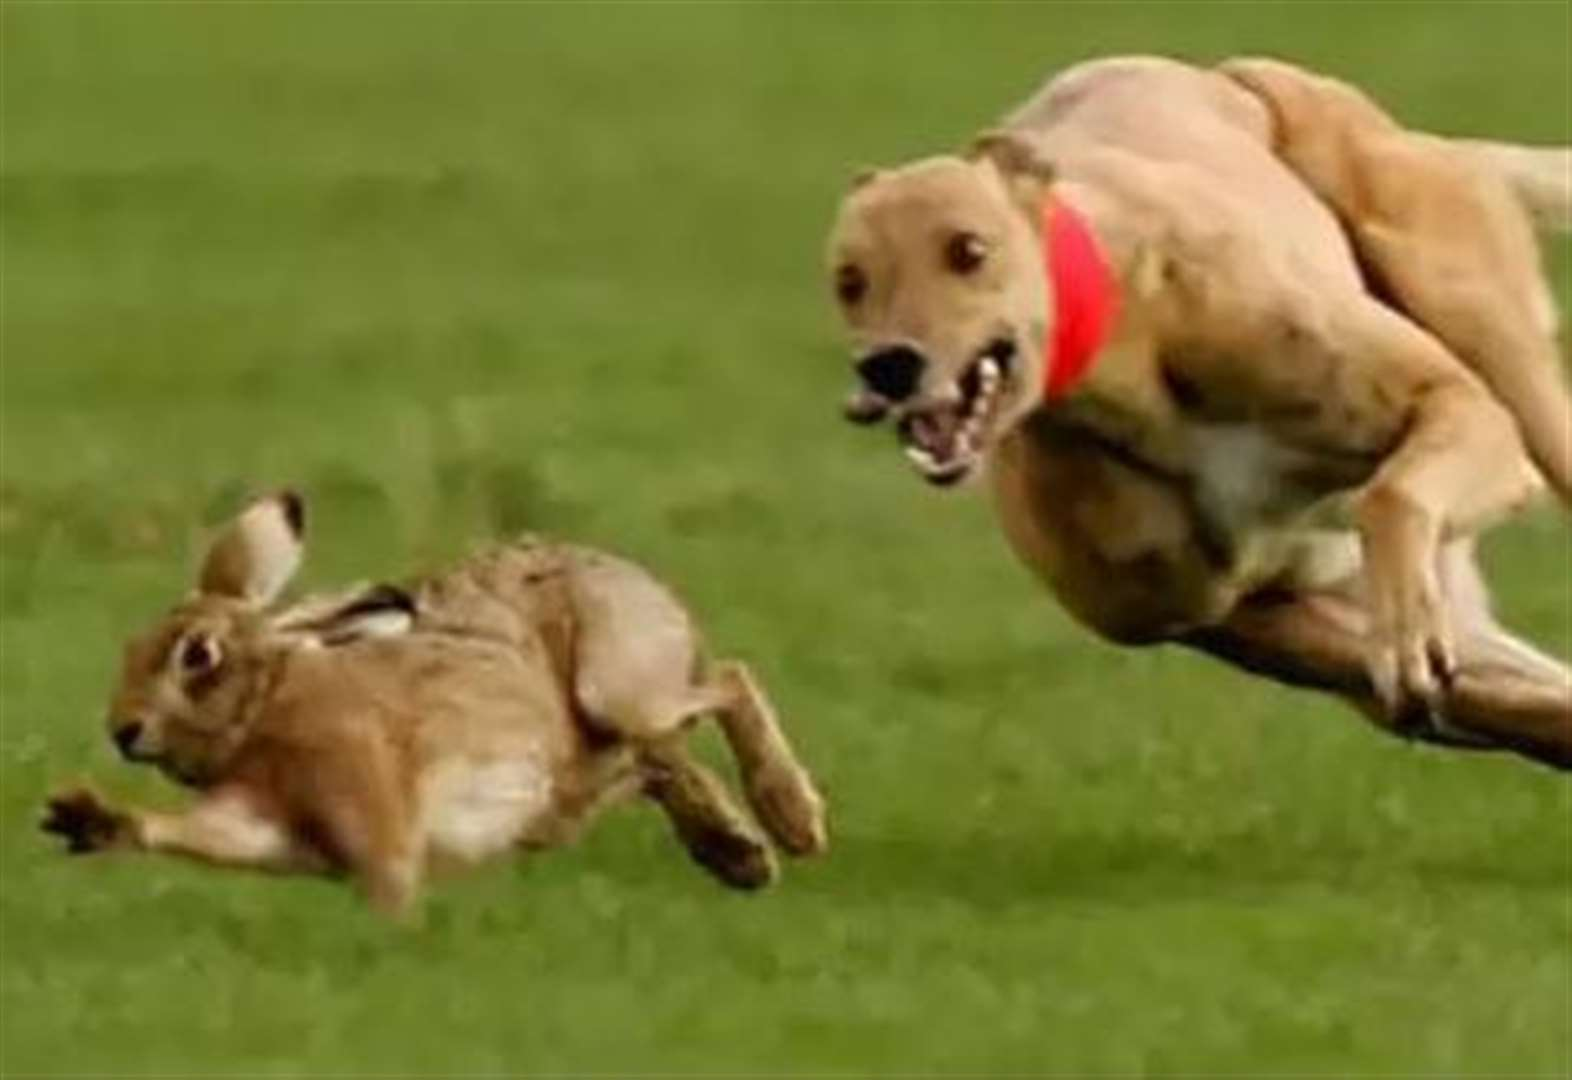 Get tough on illegal hare coursing, police are urged